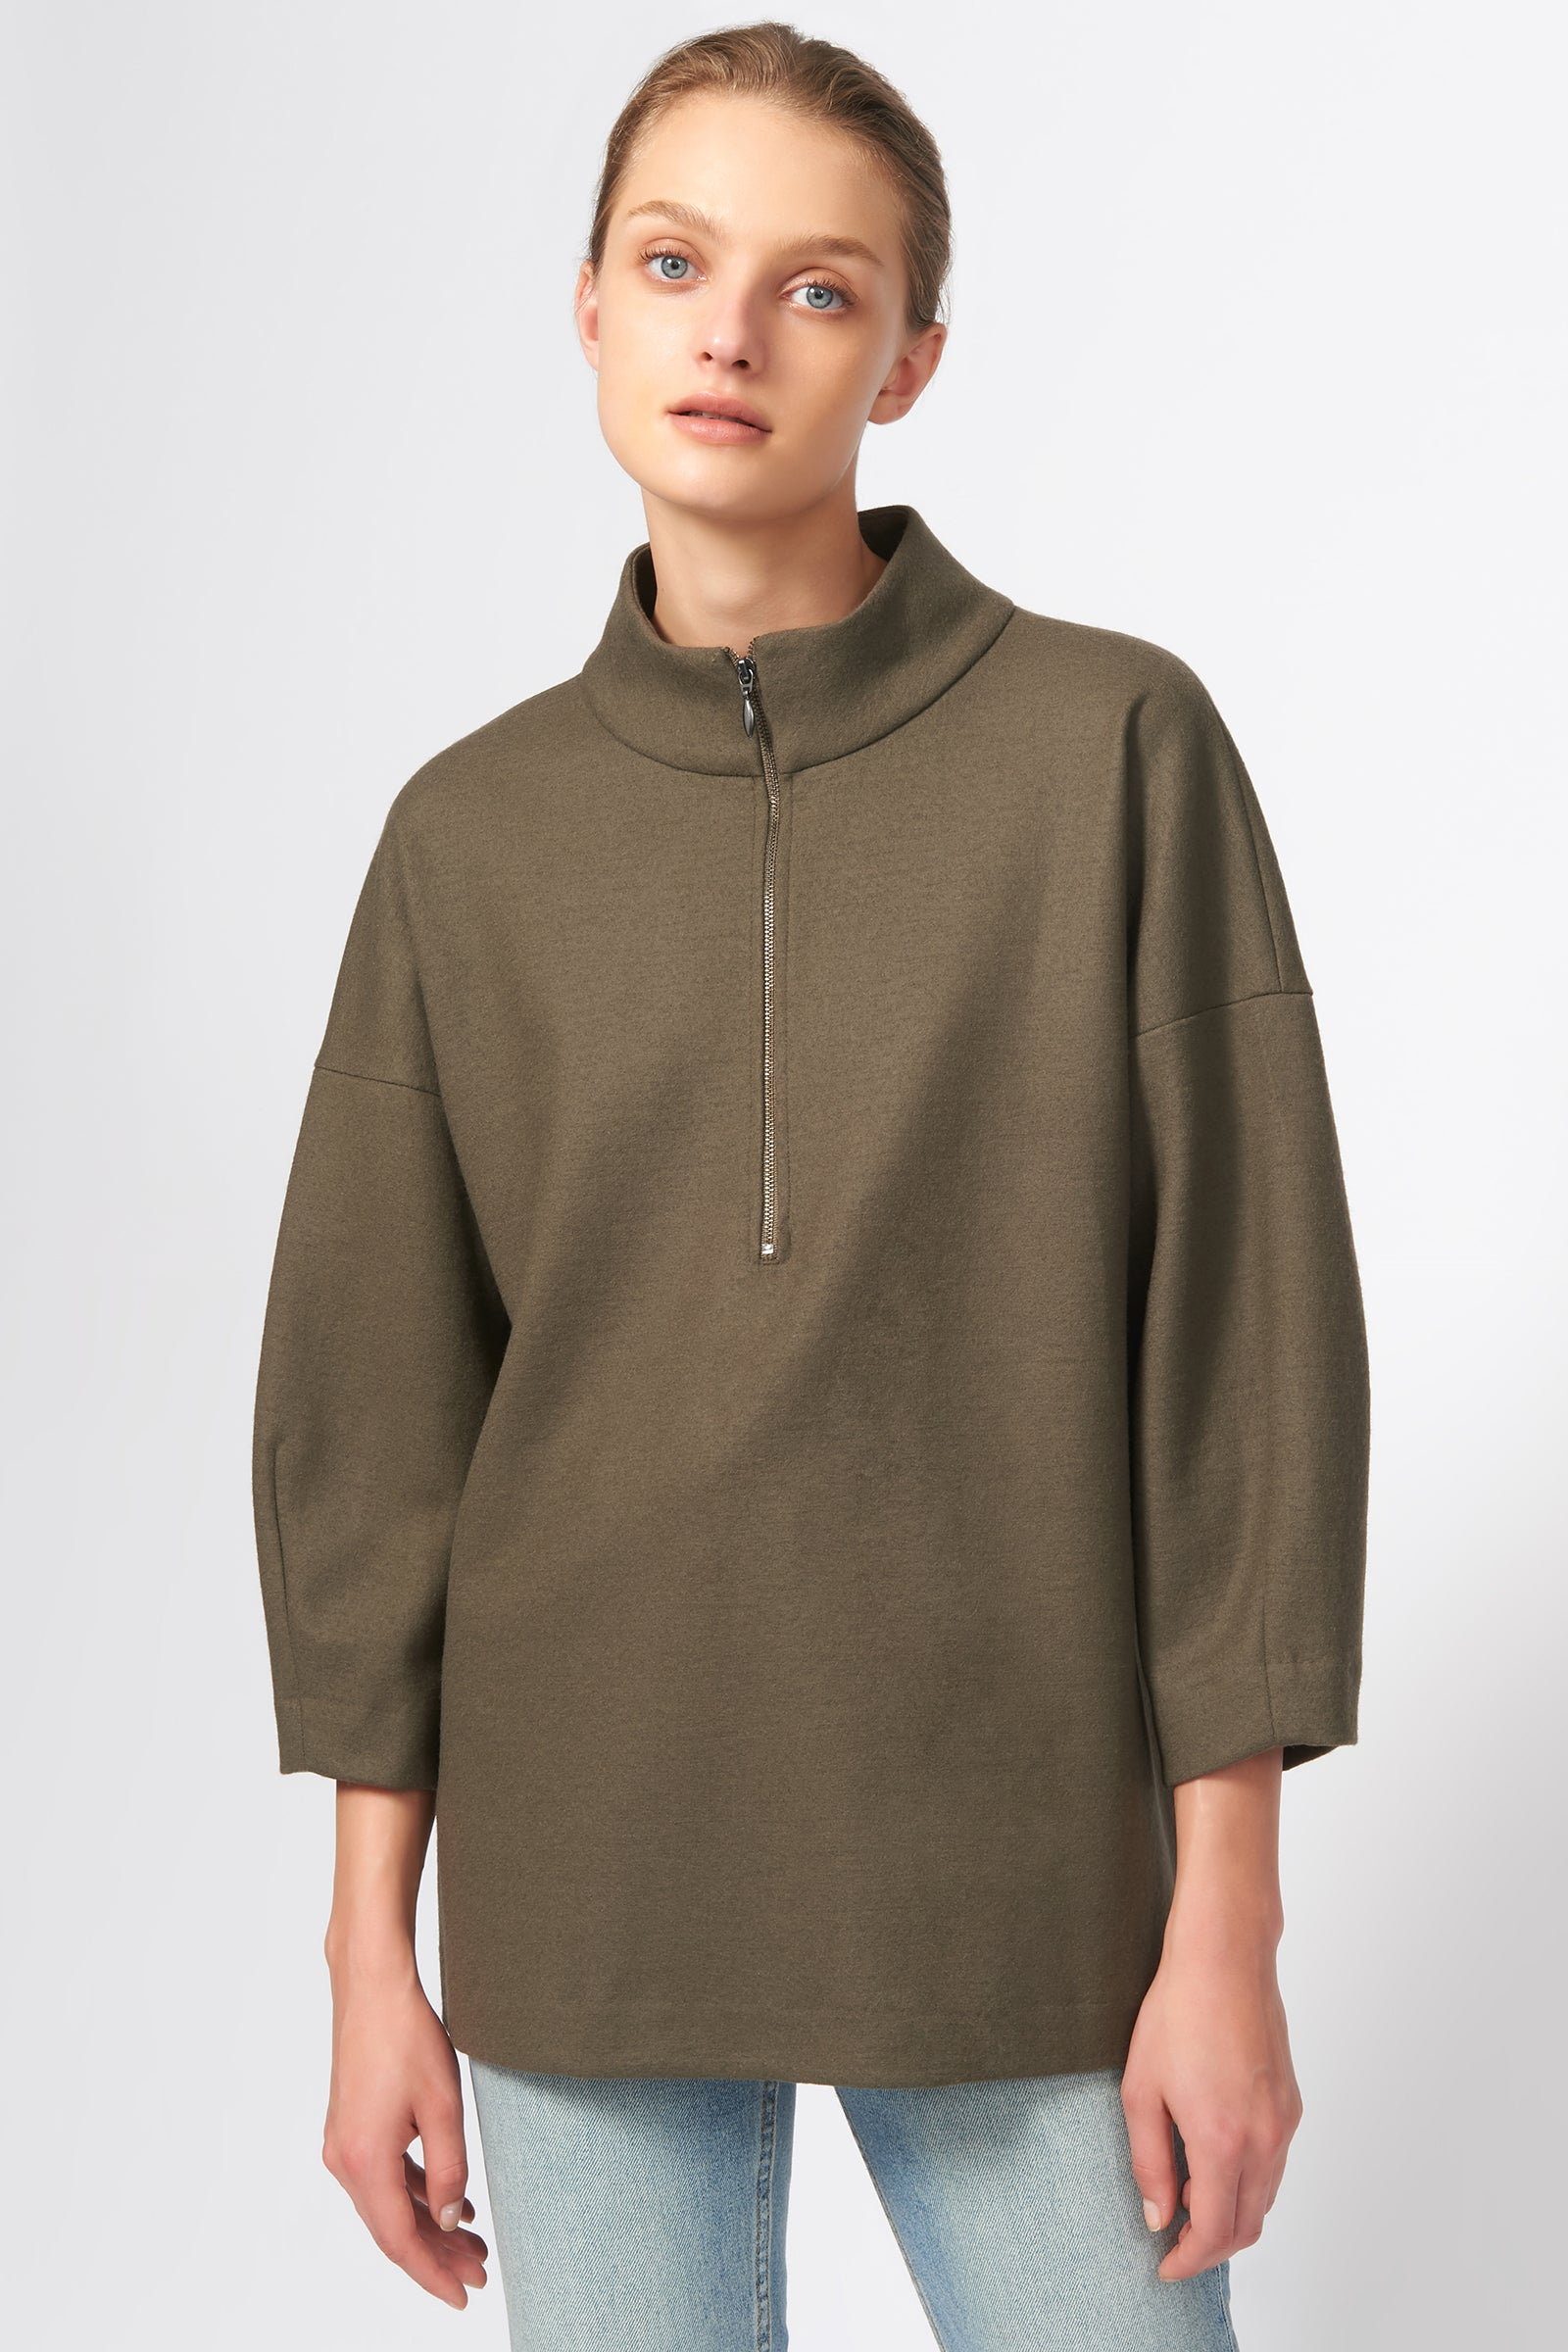 Kal Rieman Quarter Zip Top in Moss on Model Front View